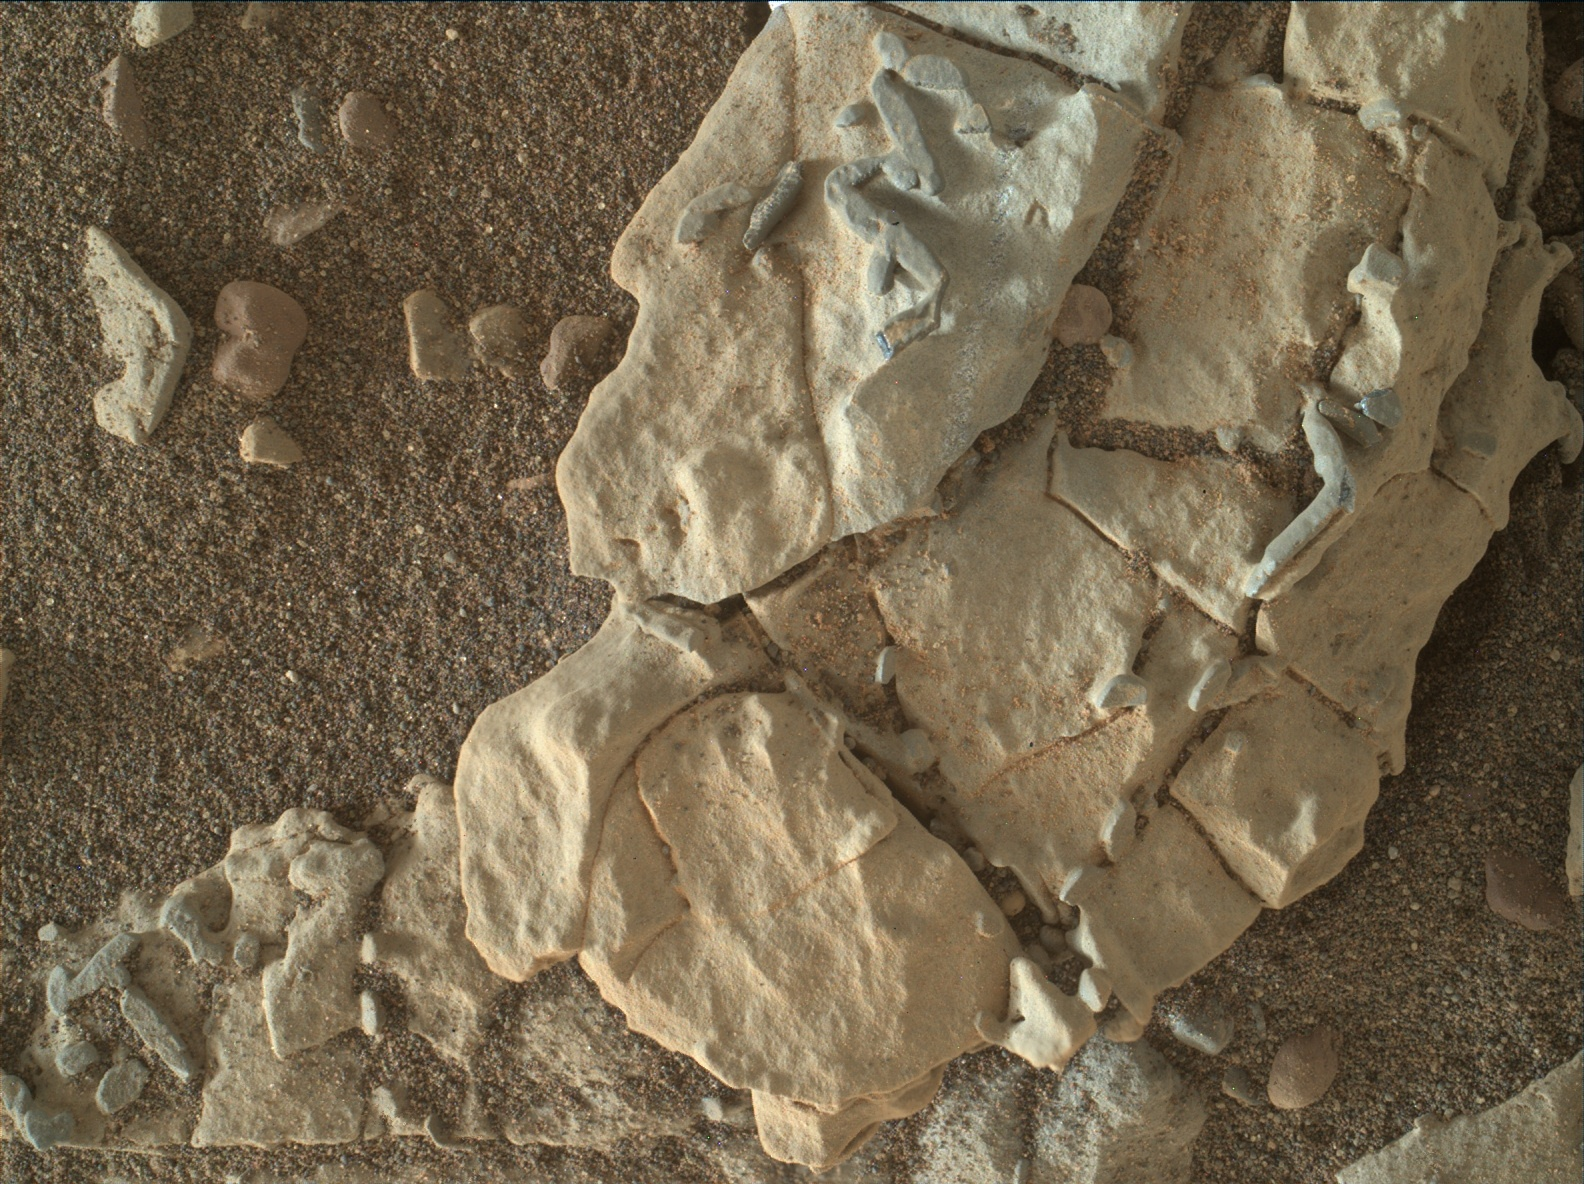 Tiny Crystal Shapes Get Close Look From Mars Rover Solar System